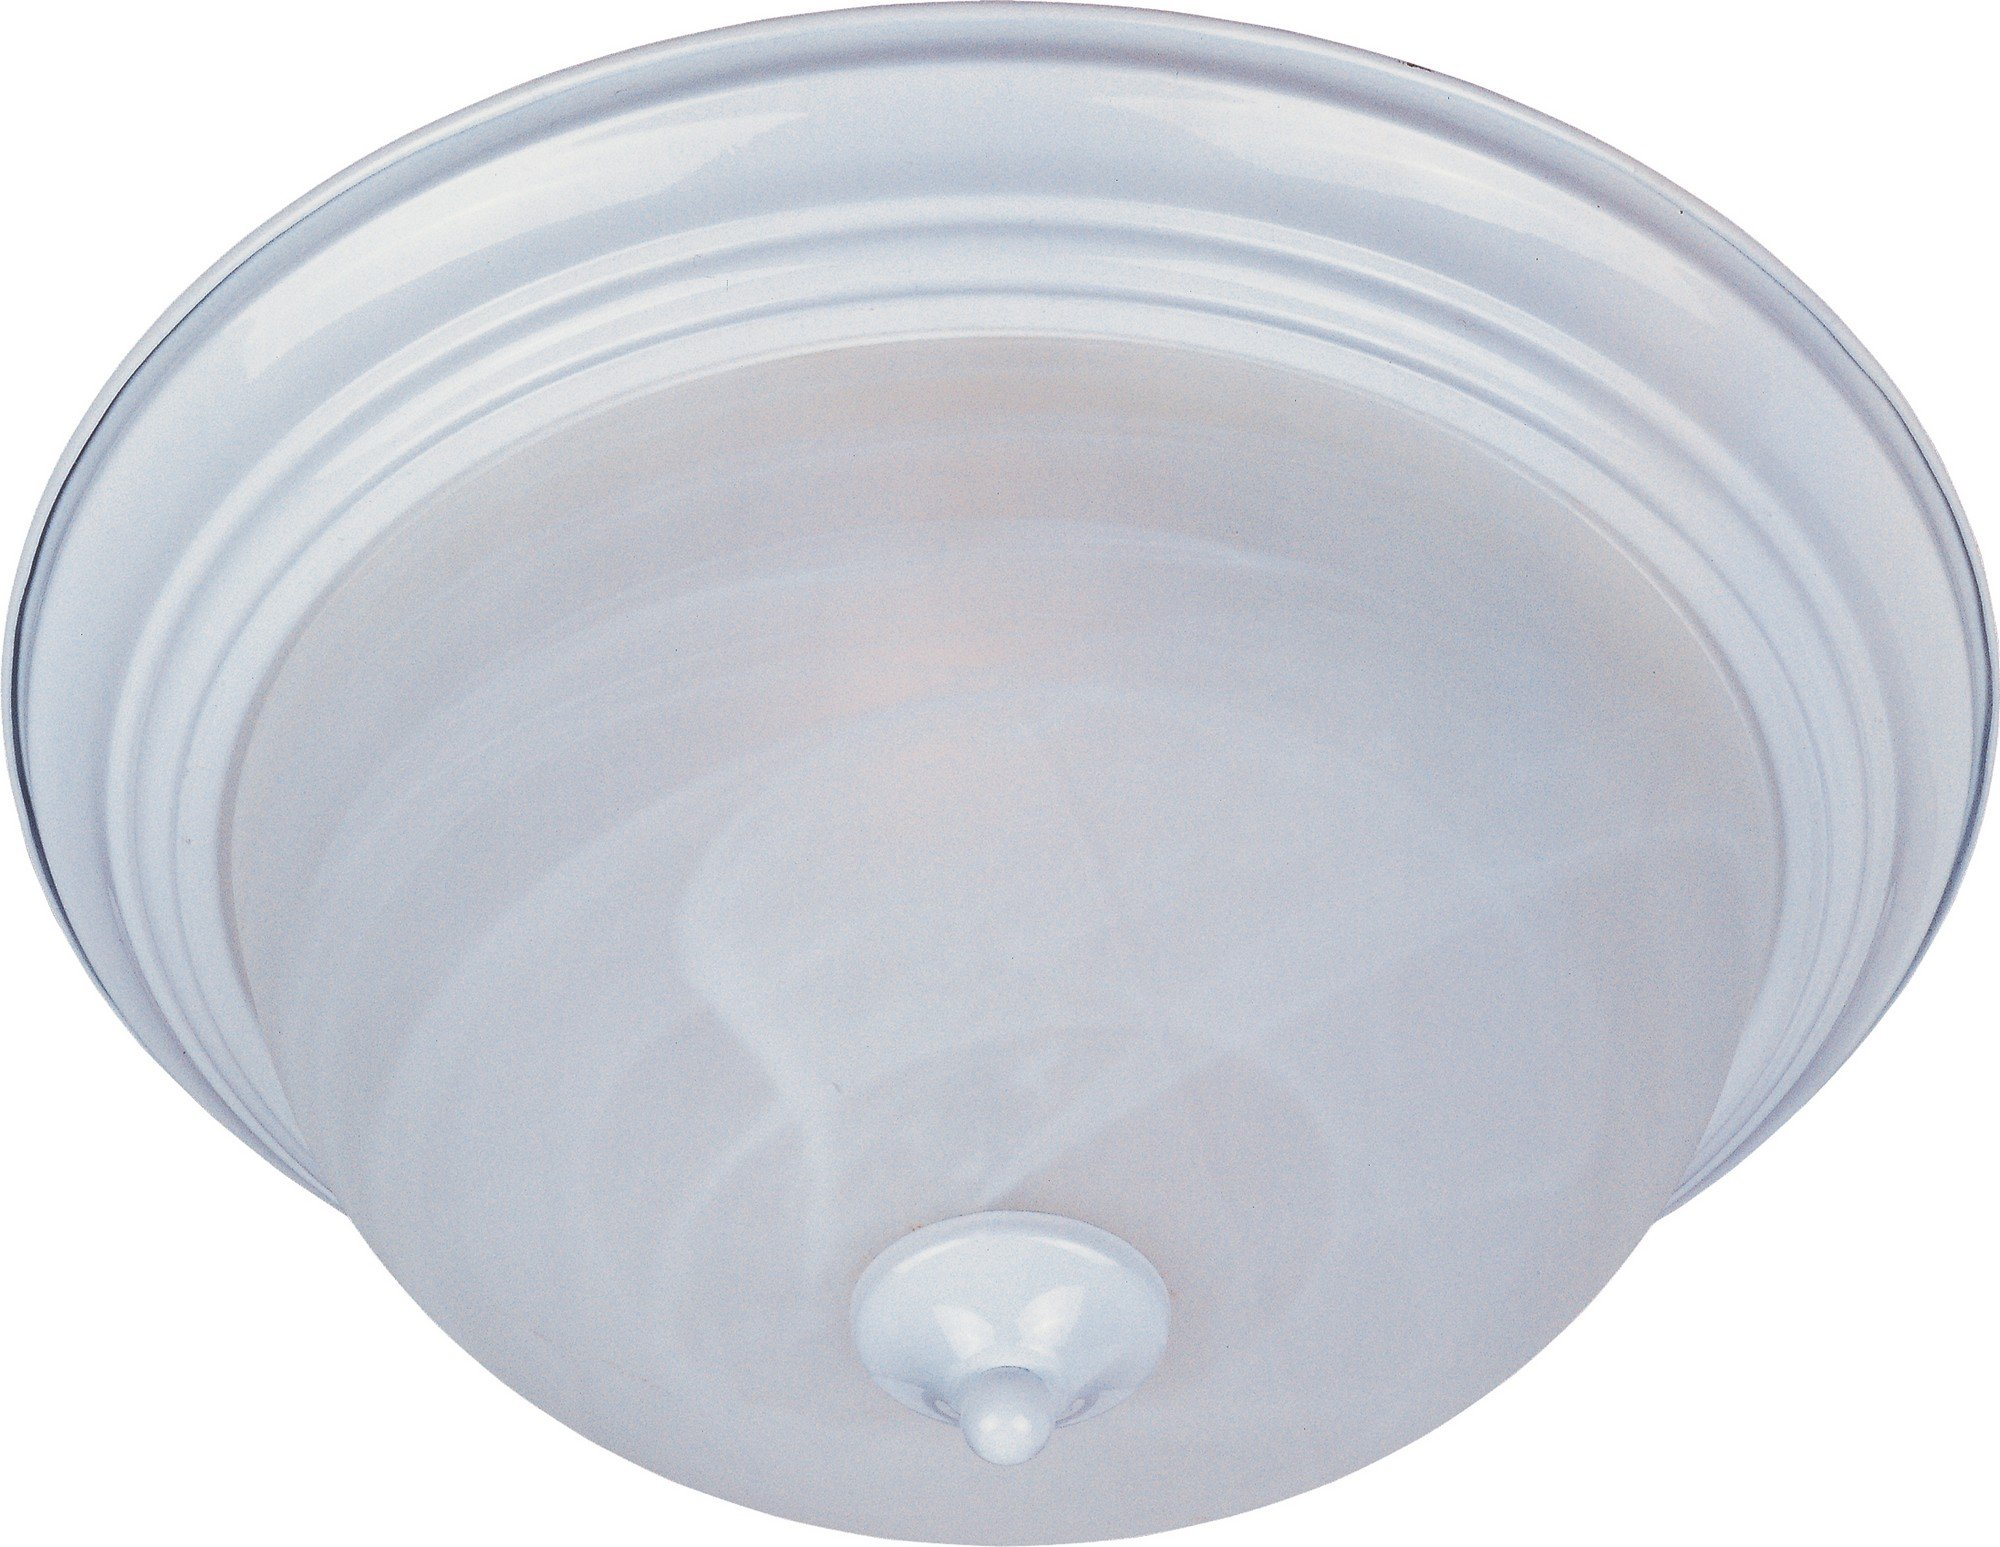 Maxim 5841MRWT Essentials 2-Light Flush Mount, White Finish, Marble Glass, MB Incandescent Incandescent Bulb , 60W Max., Dry Safety Rating, Standard Dimmable, Glass Shade Material, Rated Lumens